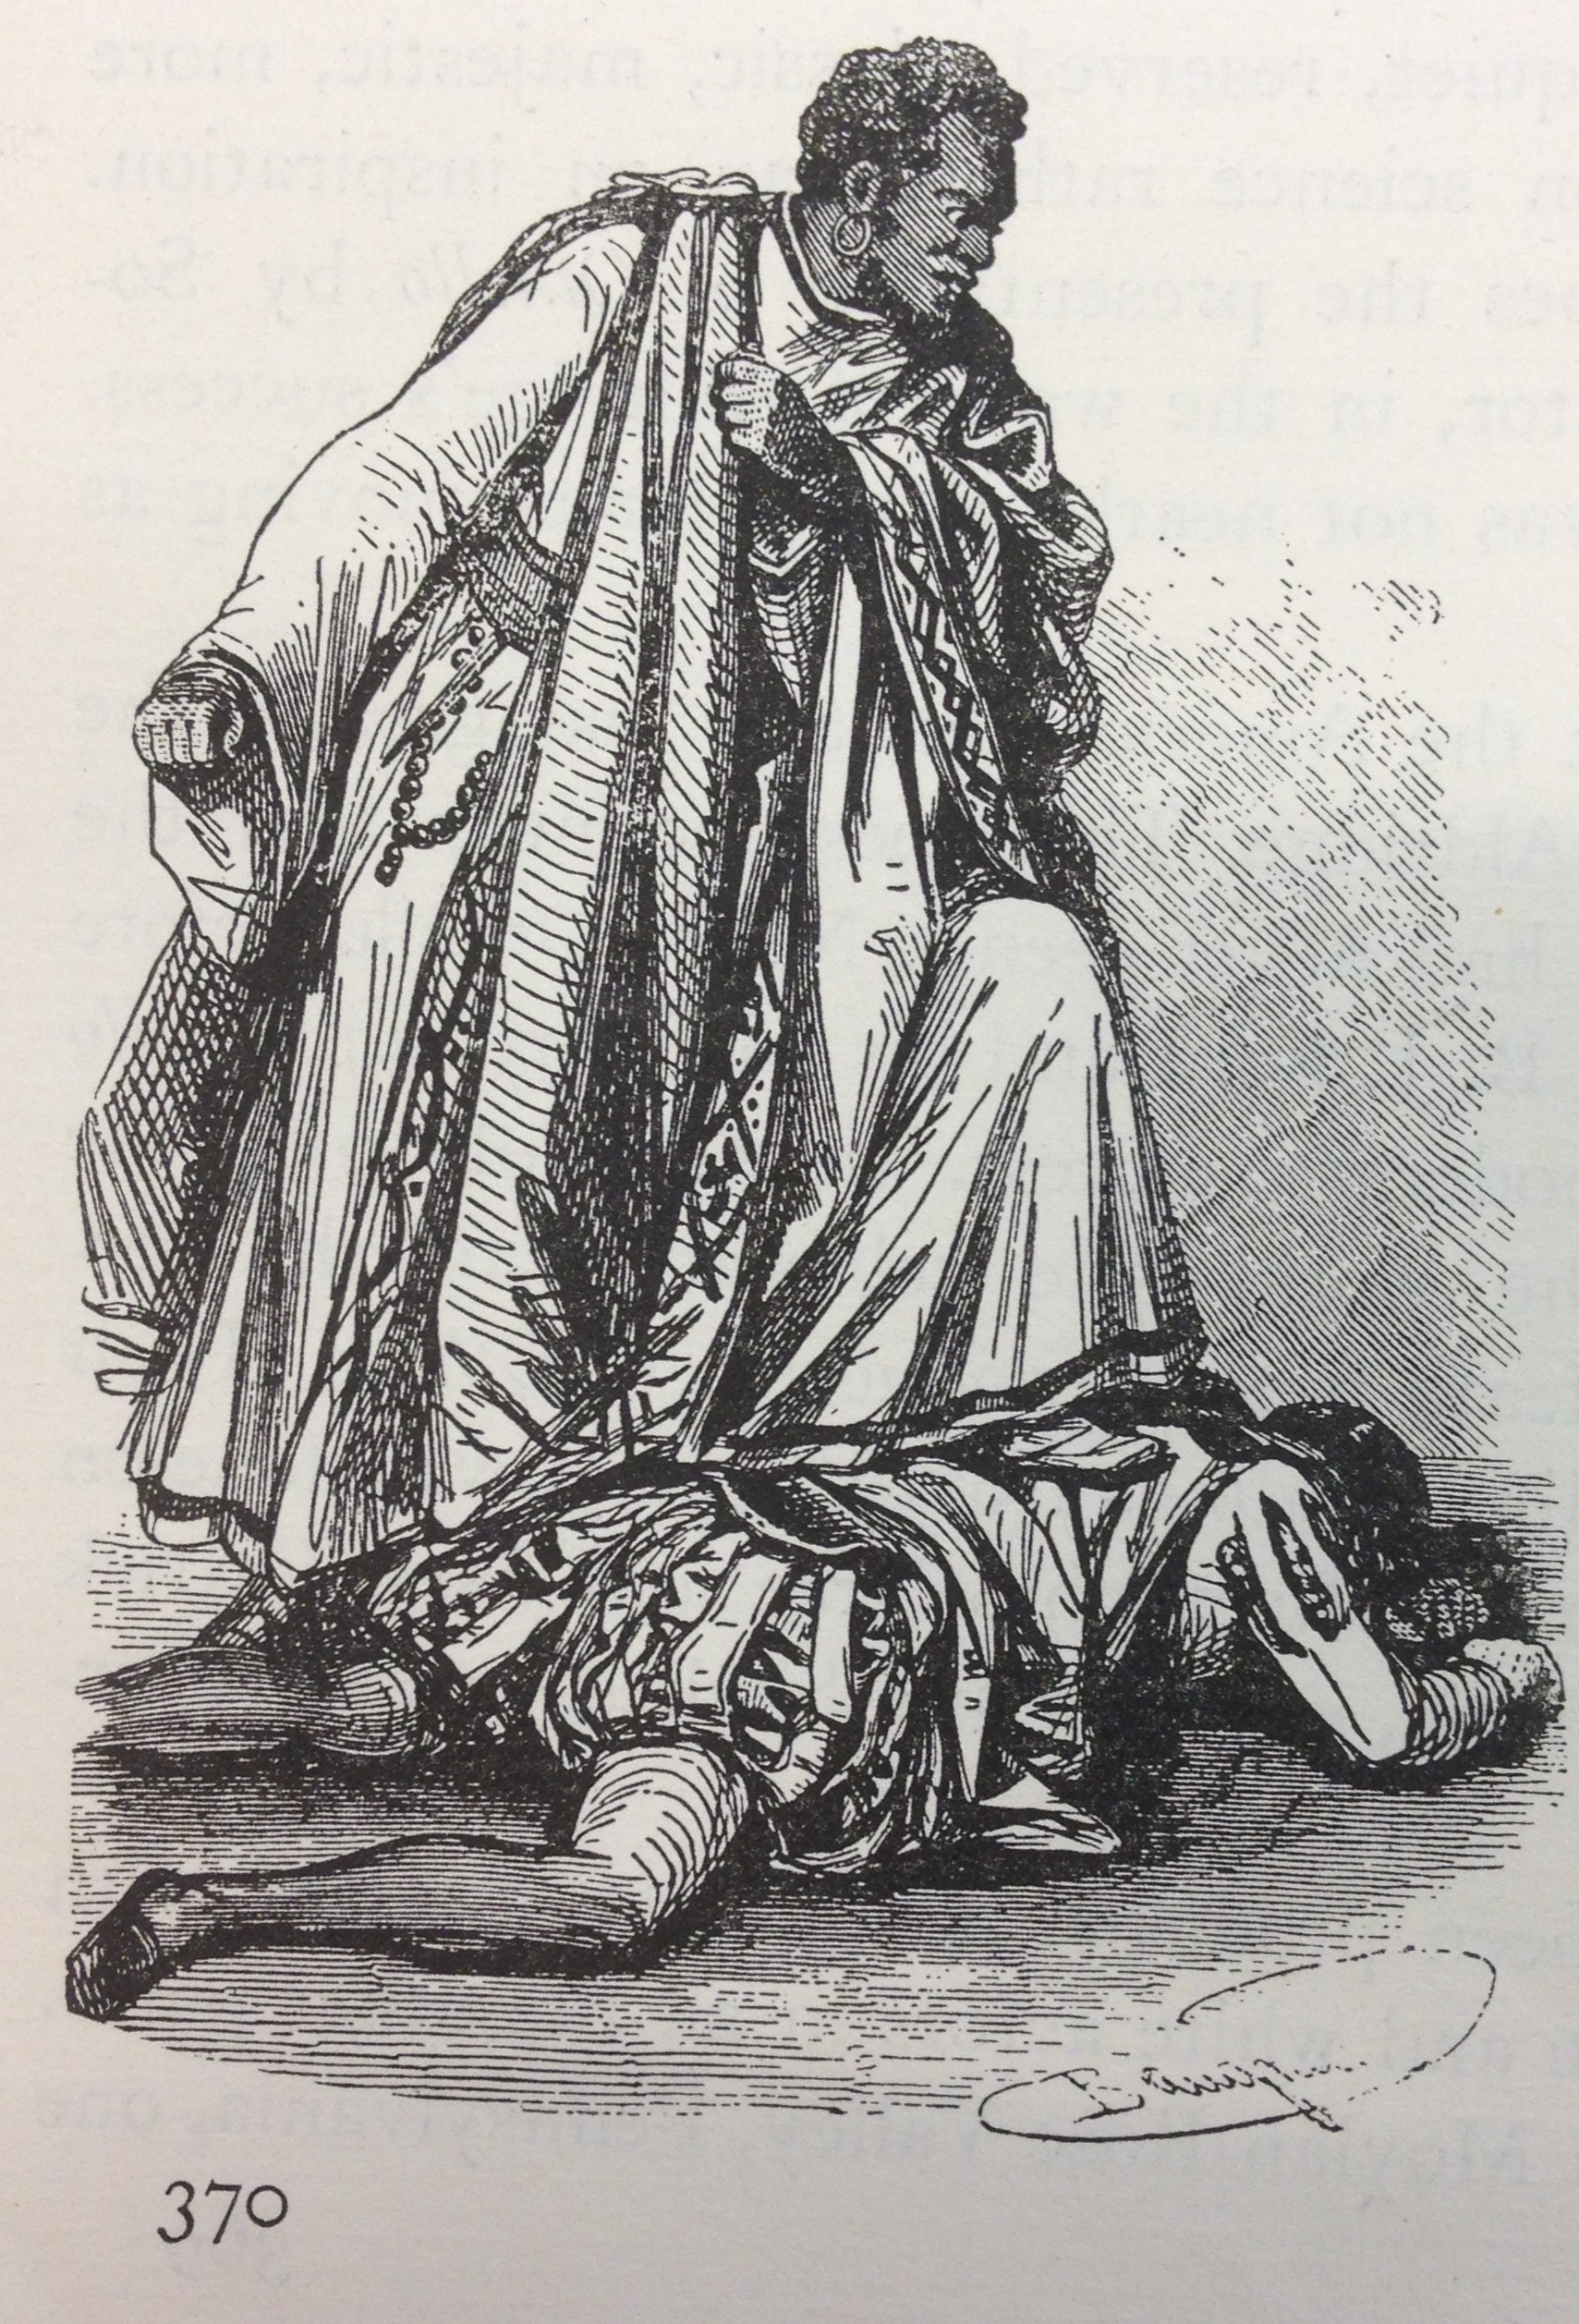 <b>Zanga, 1848</b>     	</br>Ira Aldridge as Zanga in The Revenge at the Surrey Theatre, London, 1848.</br><br/><b>Source: </b><i>Used with permission from the University of Bristol Theatre Collection.</i>